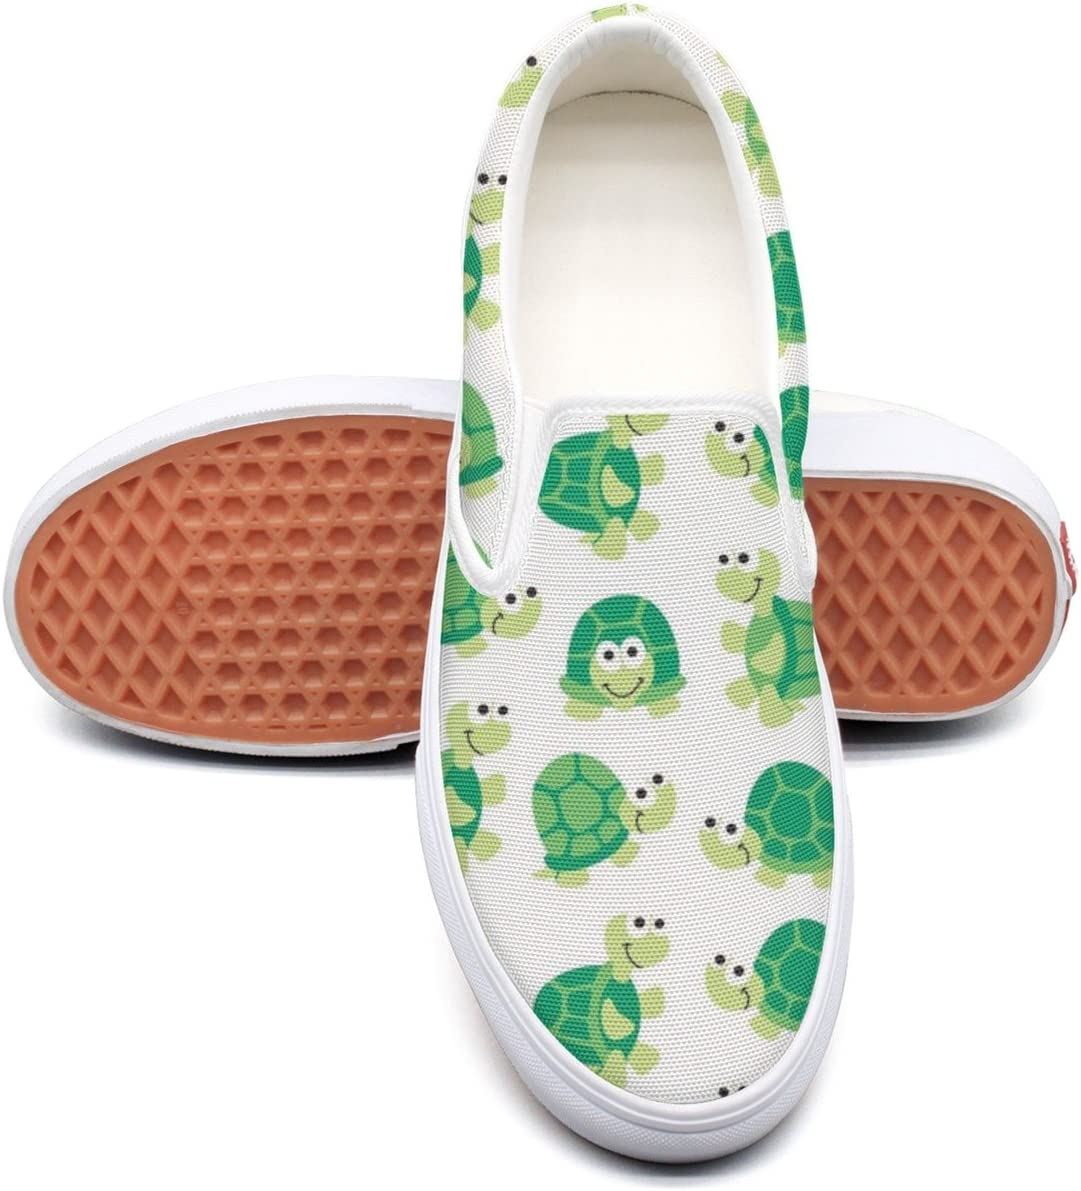 seventtynine Green Turtle Classic Womens Canvas Slip-Ons Loafer Shoes Sneaker